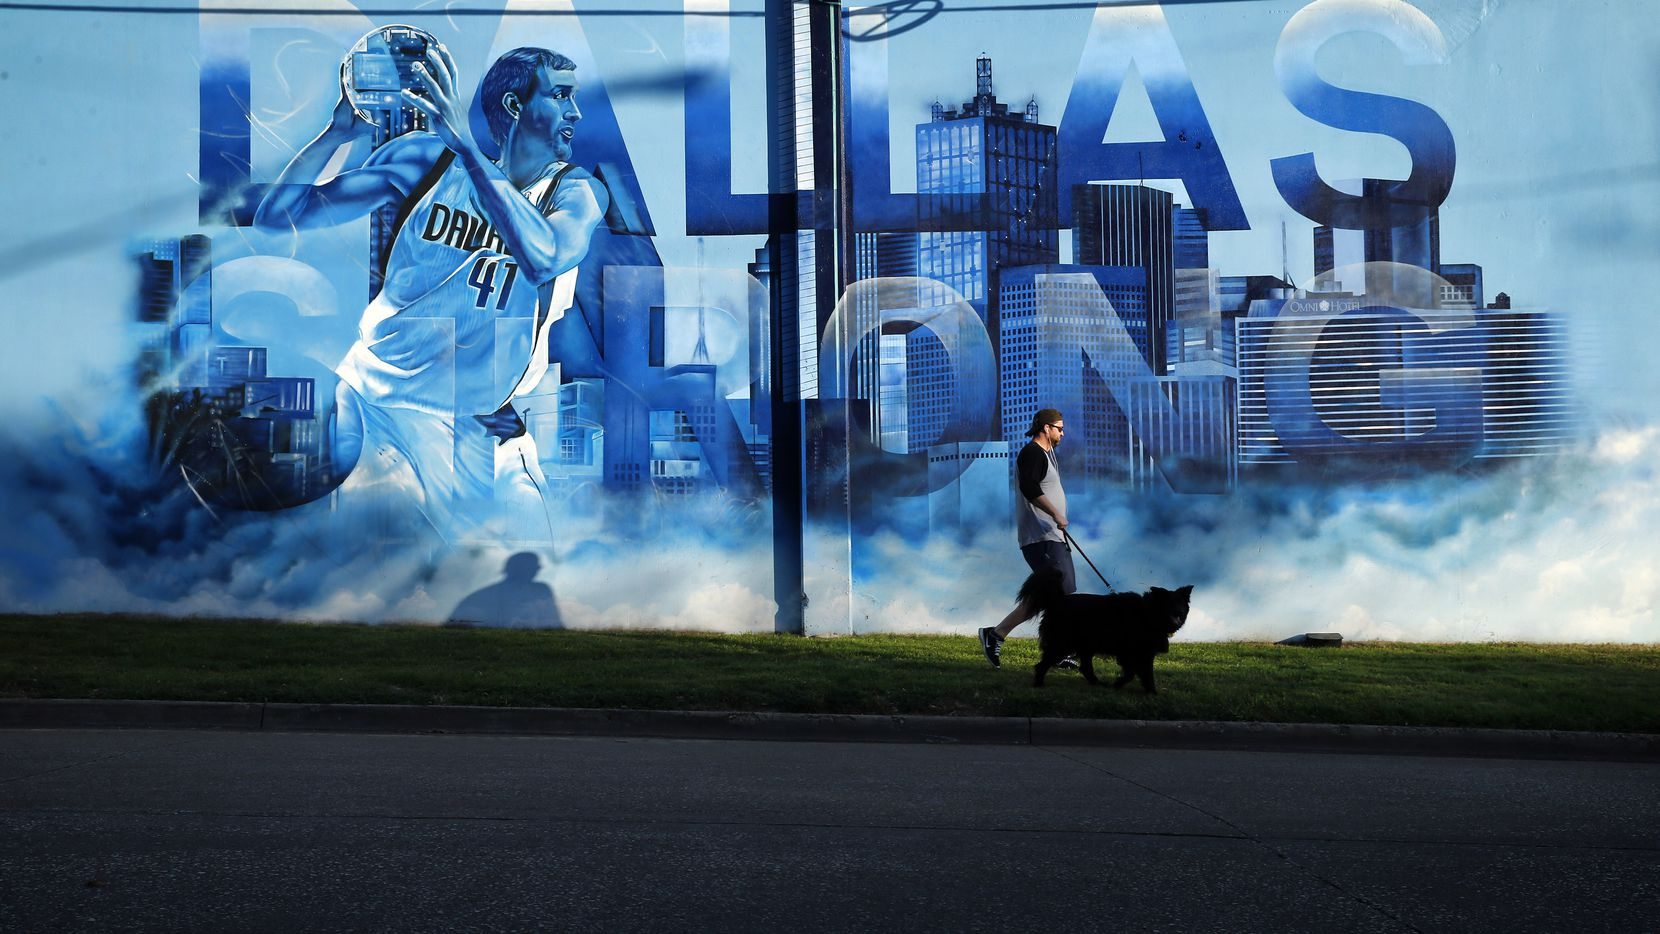 Scott Mitchell of Dallas walks his border collie Arthur past an image of Dallas Mavericks forward Dirk Nowitzki, which is displayed on the side of the team's practice facility near downtown Dallas.